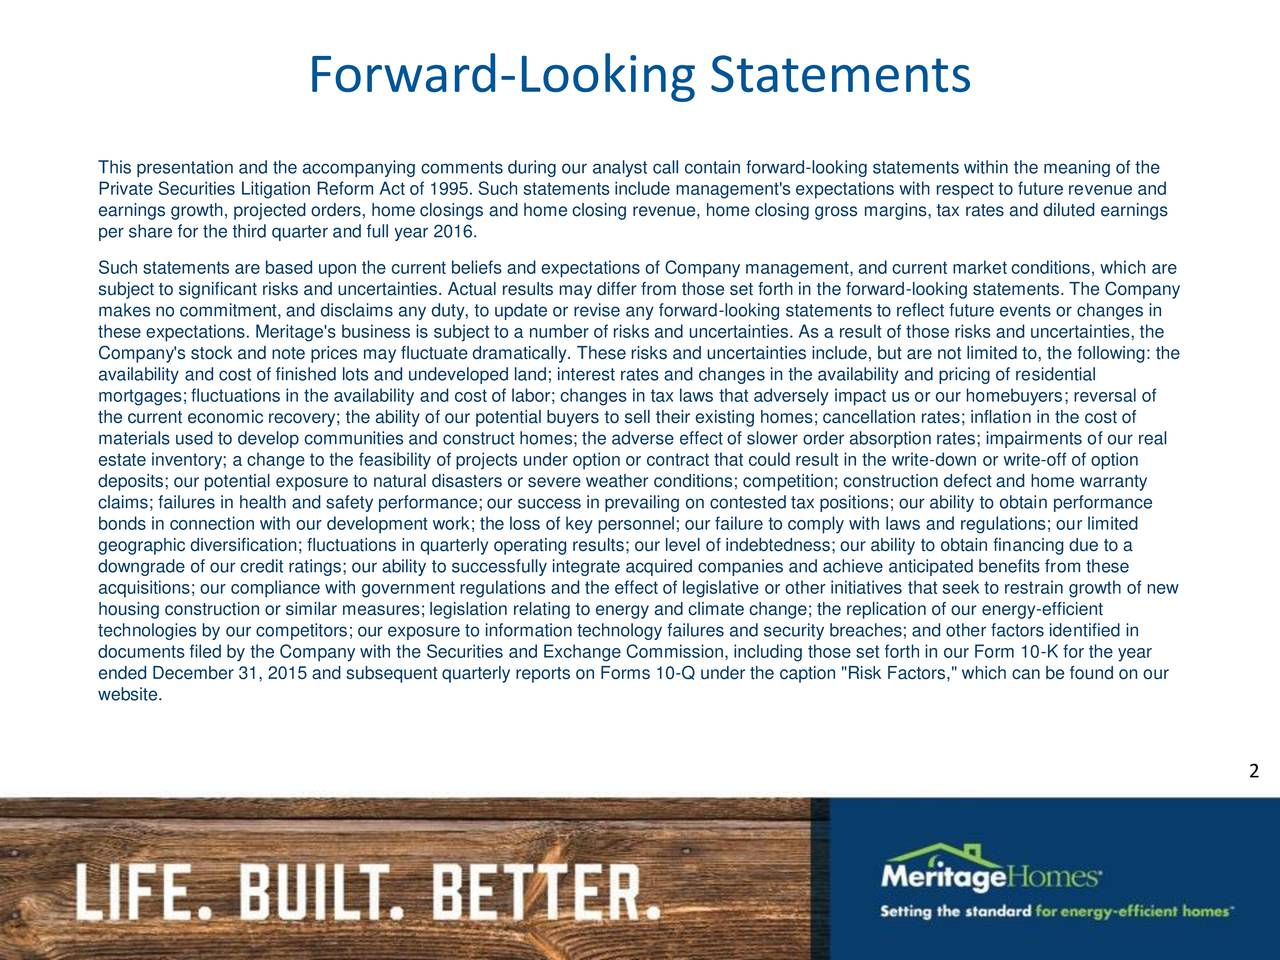 This presentation and the accompanying comments during our analyst call contain forward-looking statements within the meaning of the Private Securities Litigation Reform Act of 1995. Such statements include management's expectations with respect to future revenue and earnings growth, projected orders, home closings and home closing revenue, home closing gross margins, tax rates and diluted earnings per share for the third quarter and full year 2016. Such statements are based upon the current beliefs and expectations of Company management, and current market conditions, which are subject to significant risks and uncertainties. Actual results may differ from those set forth in the forward-looking statements. The Company makes no commitment, and disclaims any duty, to update or revise any forward-looking statements to reflect future events or changes in these expectations. Meritage's business is subject to a number of risks and uncertainties. As a result of those risks and uncertainties, the Company's stock and note prices may fluctuate dramatically. These risks and uncertainties include, but are not limited to, the following: the availability and cost of finished lots and undeveloped land; interest rates and changes in the availability and pricing of residential mortgages; fluctuations in the availability and cost of labor; changes in tax laws that adversely impact us or our homebuyers; reversal of the current economic recovery; the ability of our potential buyers to sell their existing homes; cancellation rates; inflation in the cost of materials used to develop communities and construct homes; the adverse effect of slower order absorption rates; impairments of our real estate inventory; a change to the feasibility of projects under option or contract that could result in the write-down or write-off of option deposits; our potential exposure to natural disasters or severe weather conditions; competition; construction defect and home warranty claims; failures in healt